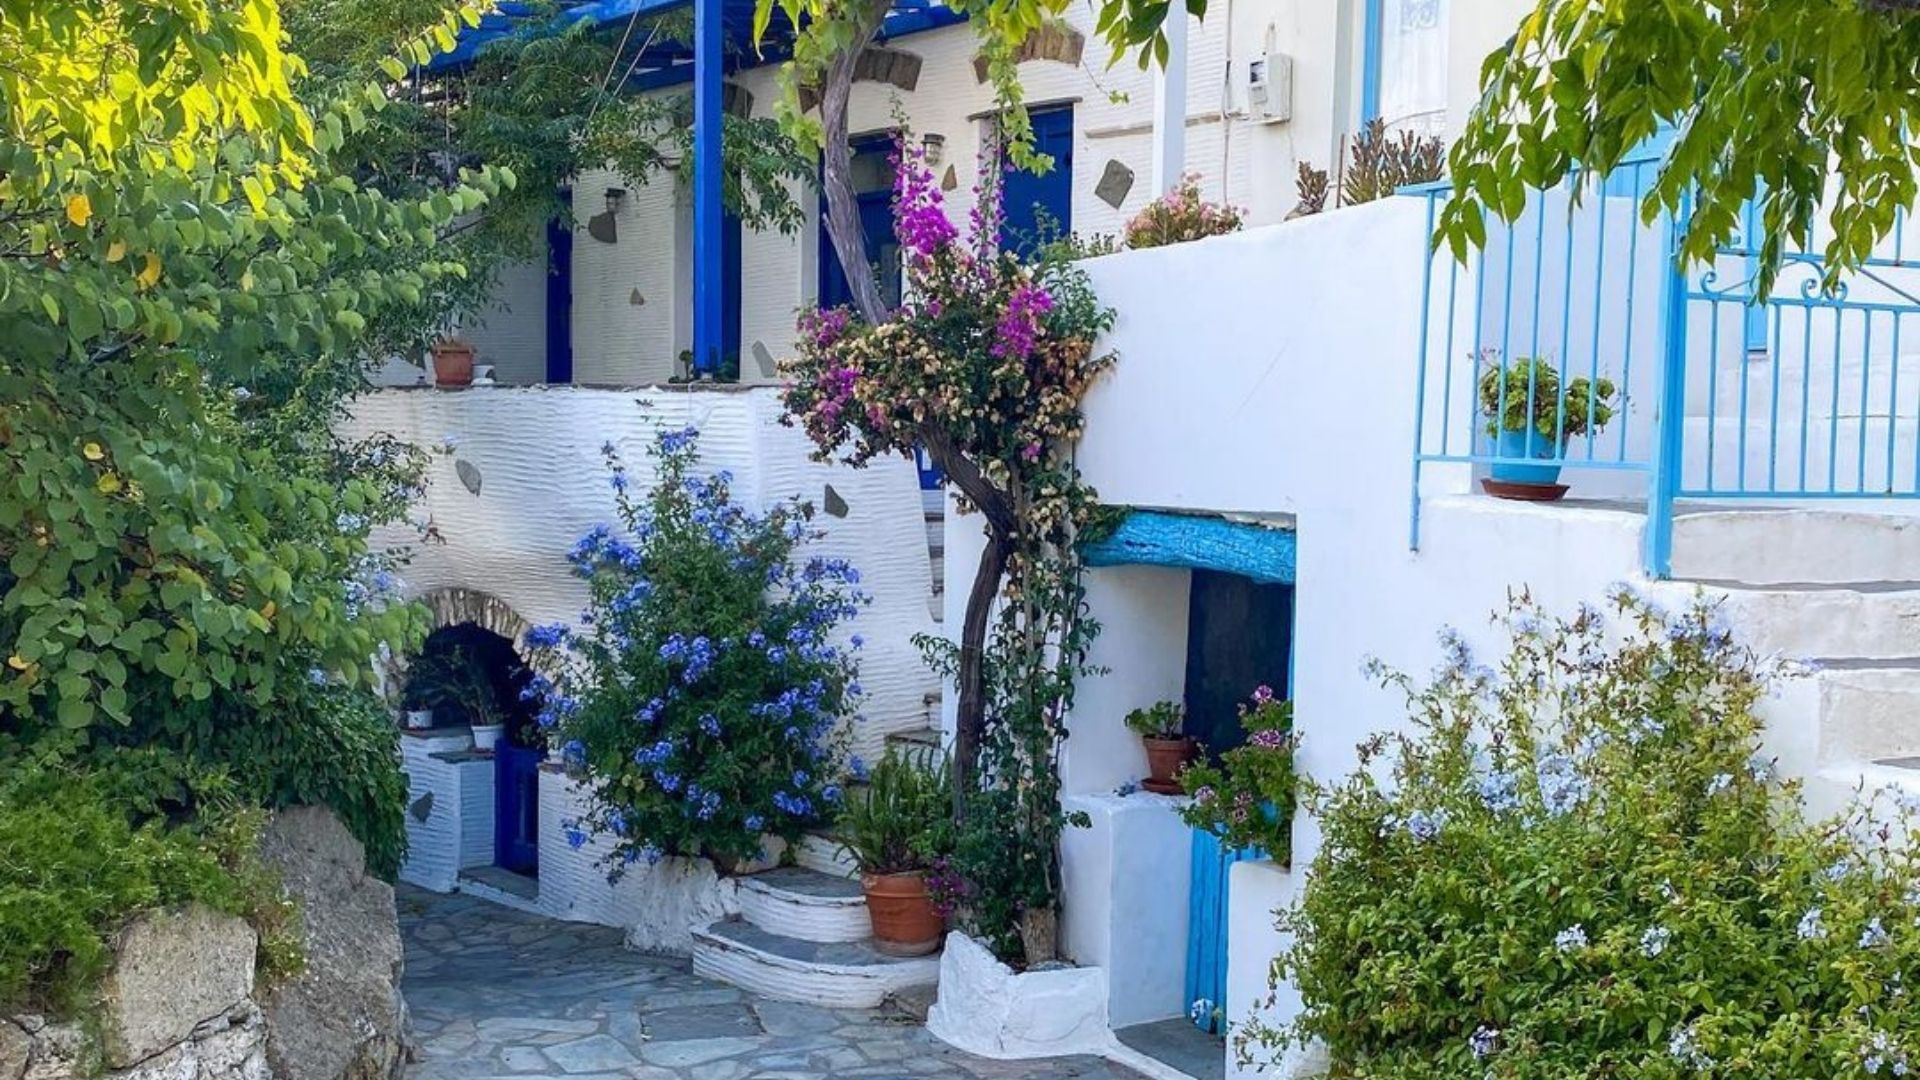 The village of Volax in Tinos